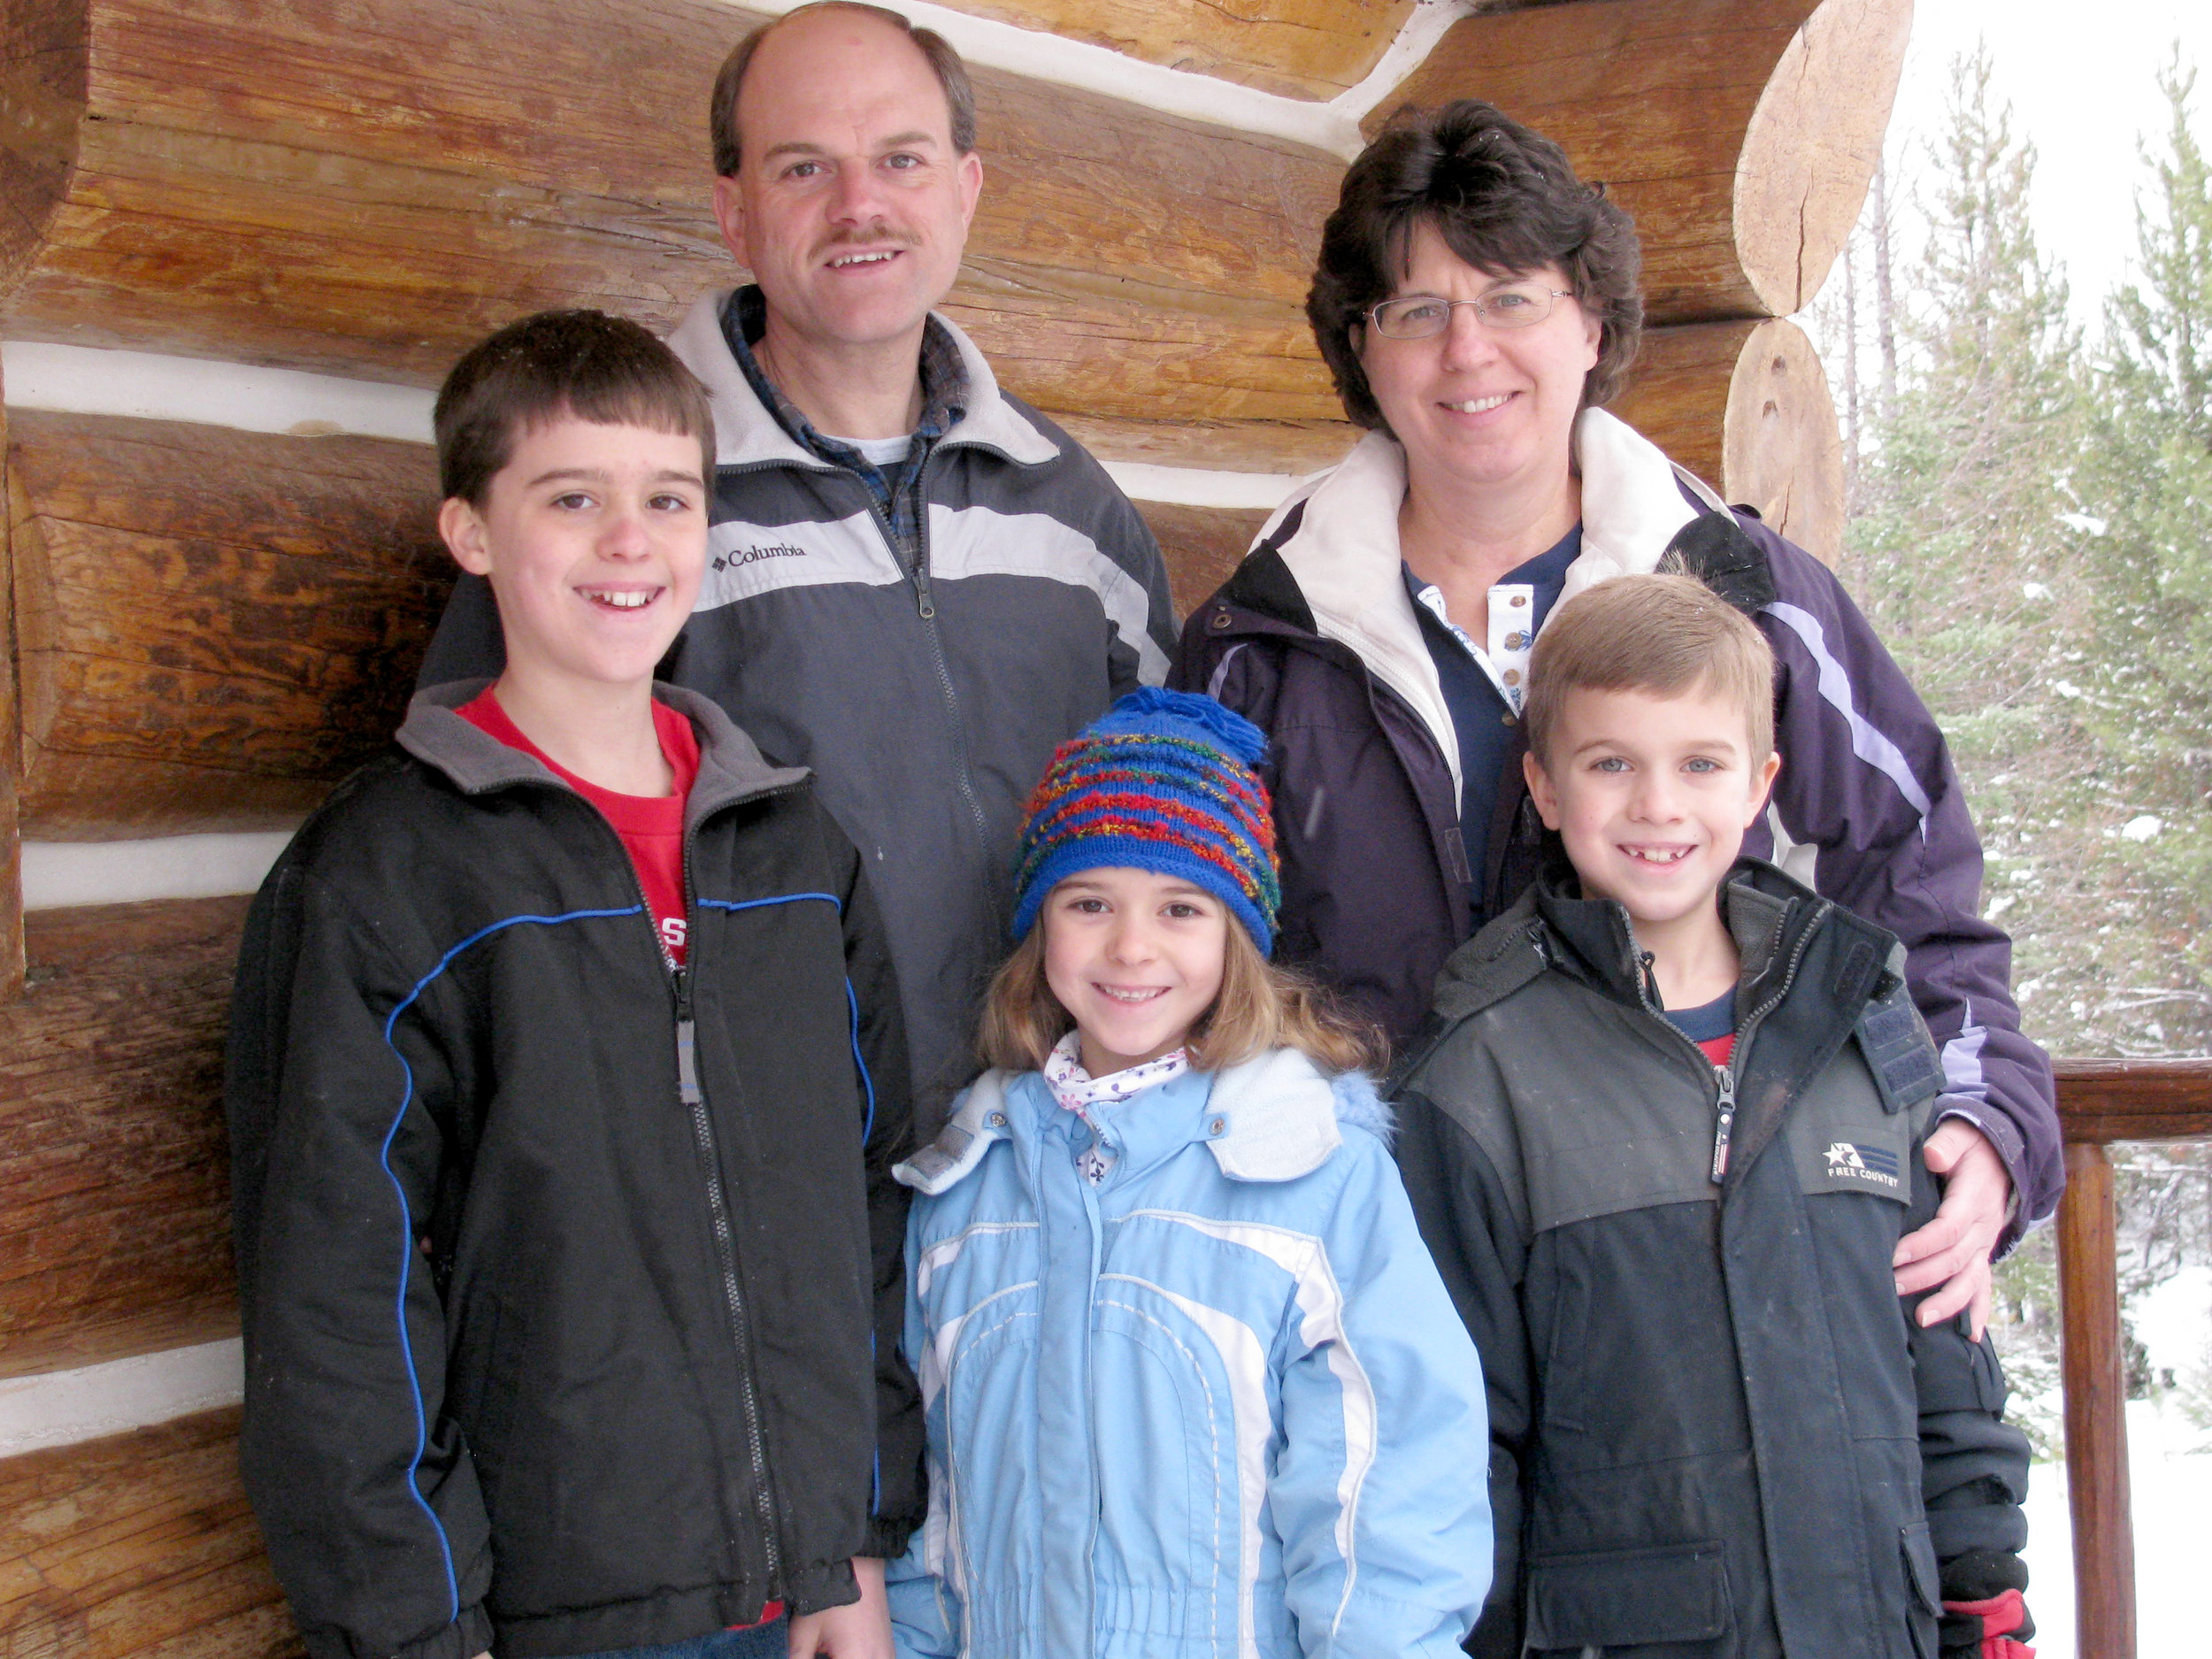 Gary & Cindy Scull and Family